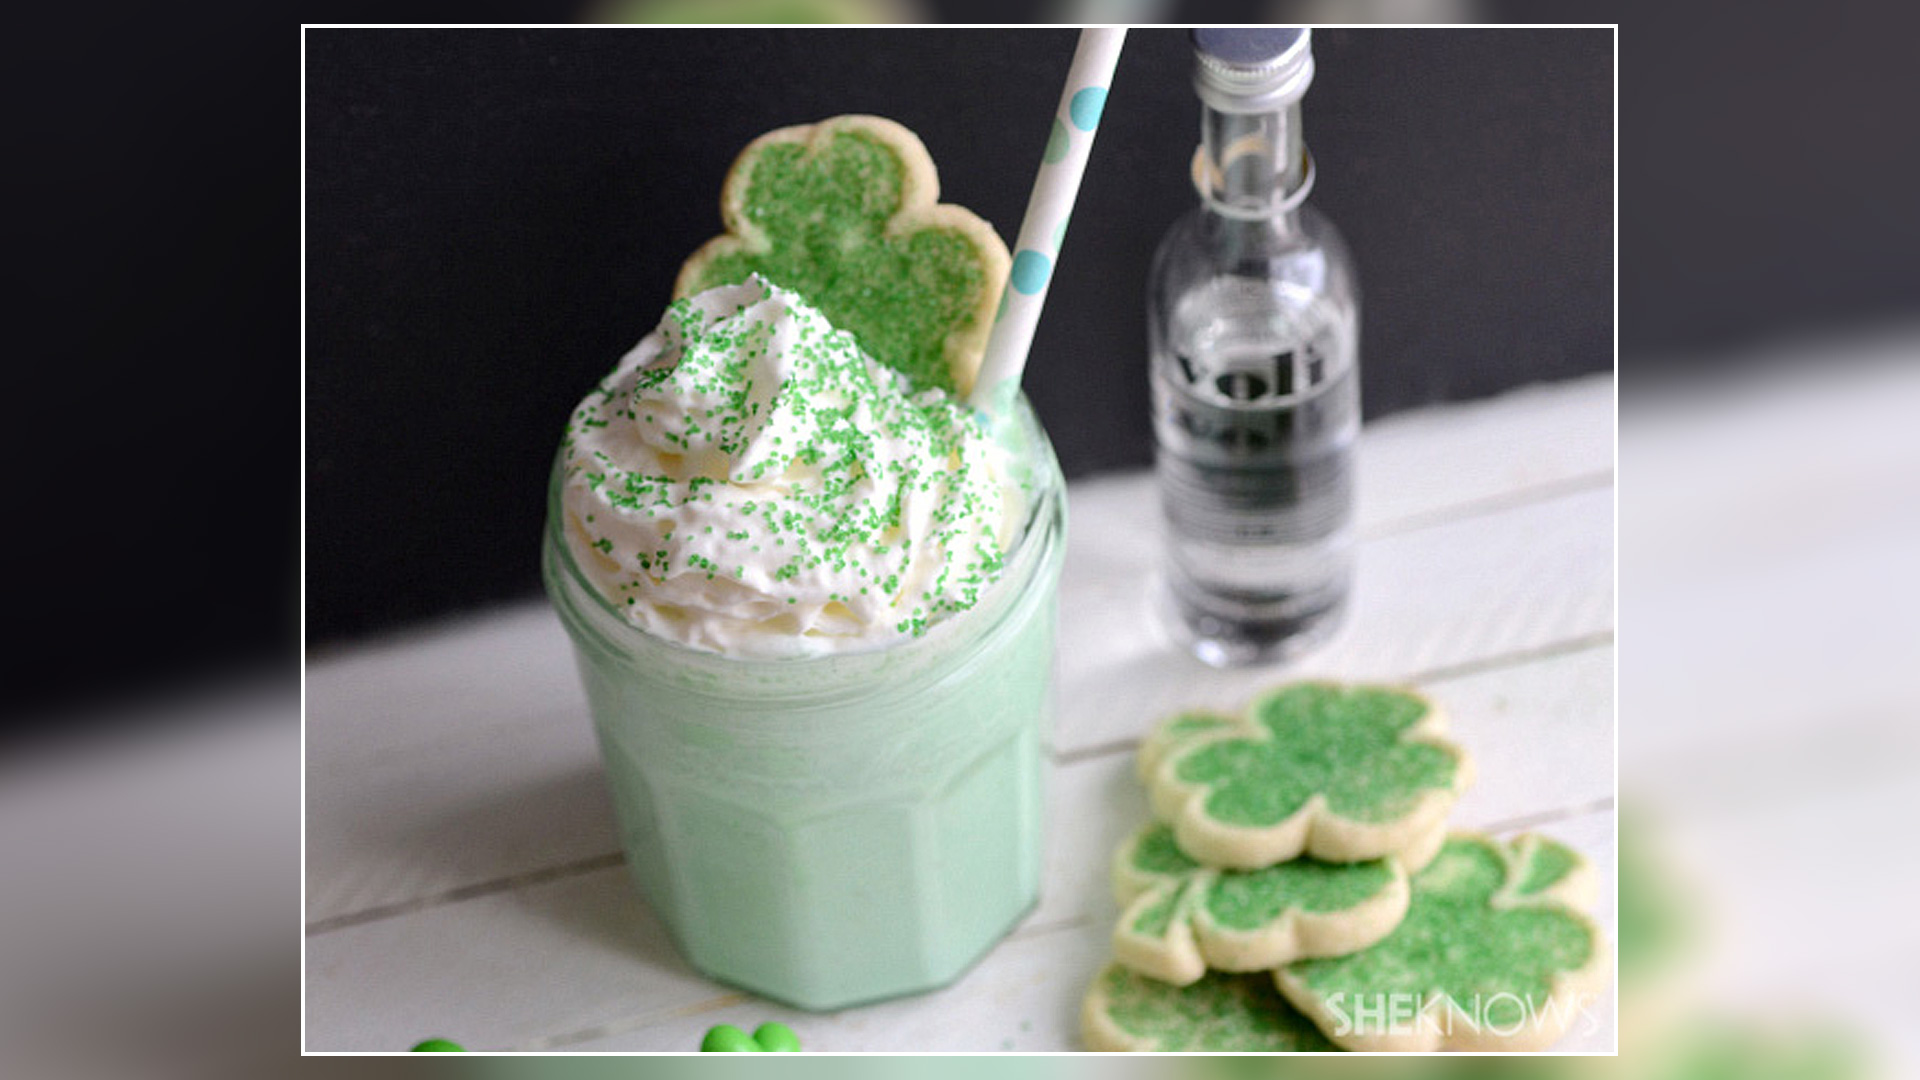 Boozy shamrock shake combines two St Patricks Day traditions 1920x1080